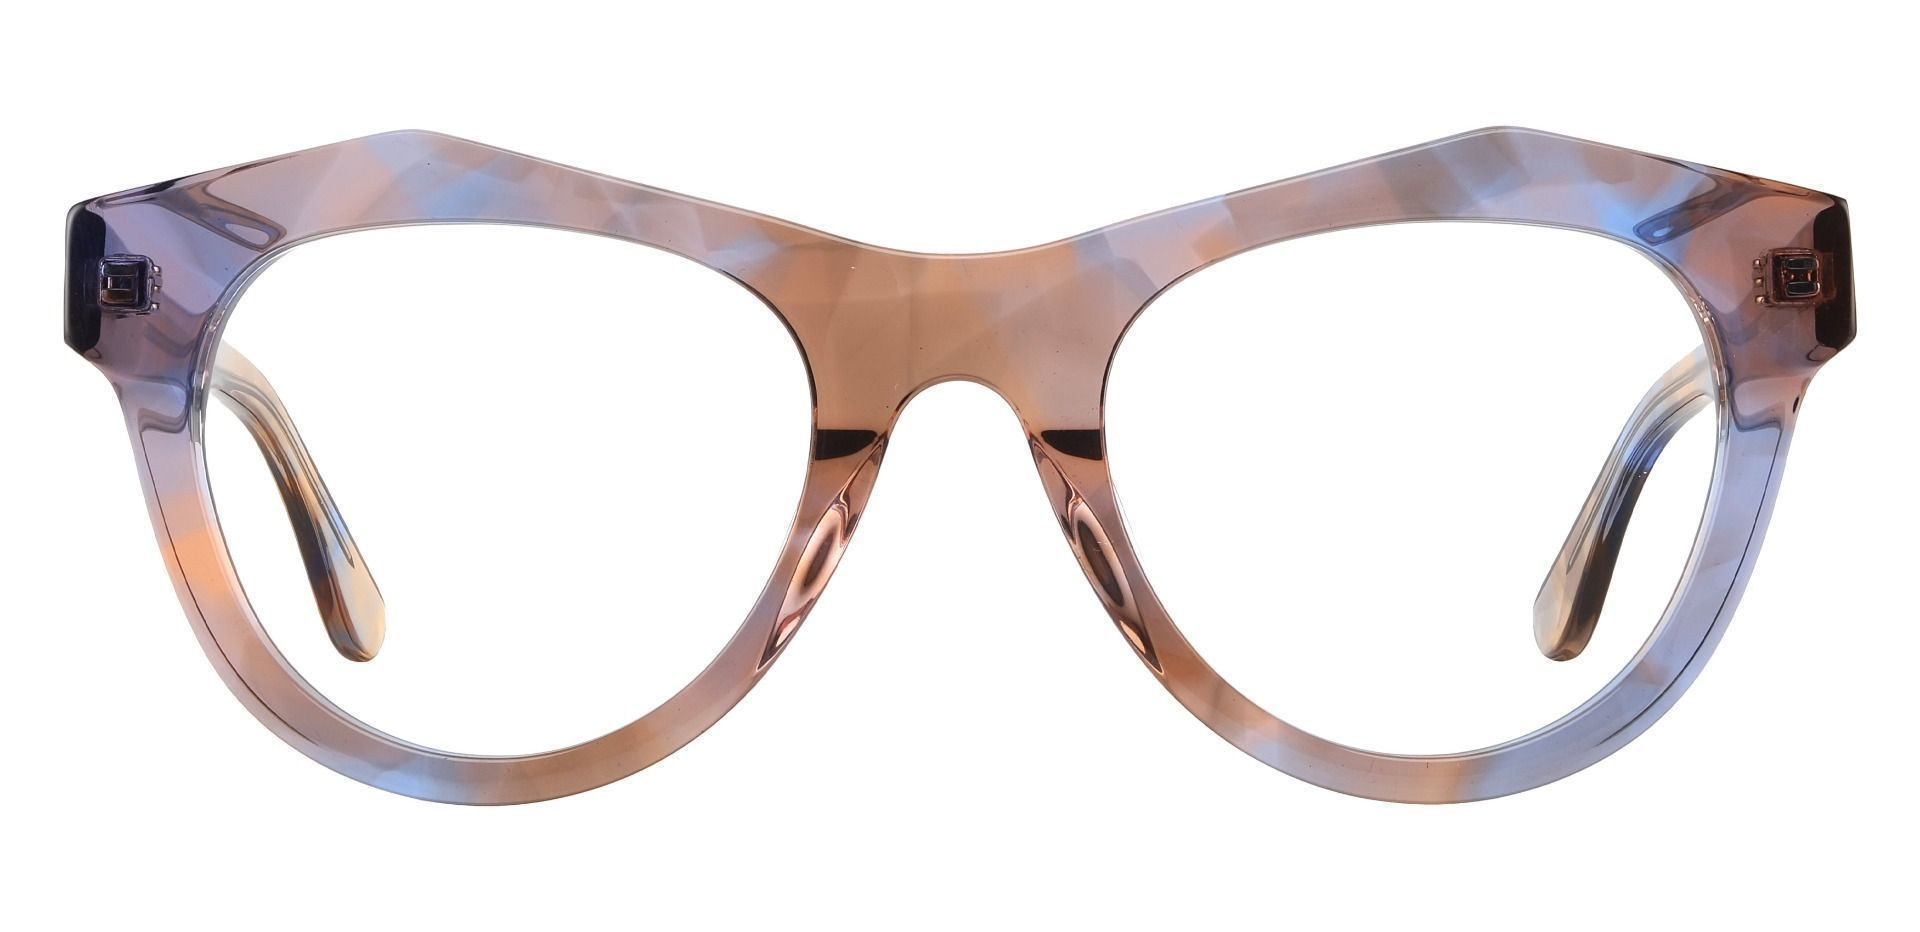 Jensen Geometric Prescription Glasses - Two